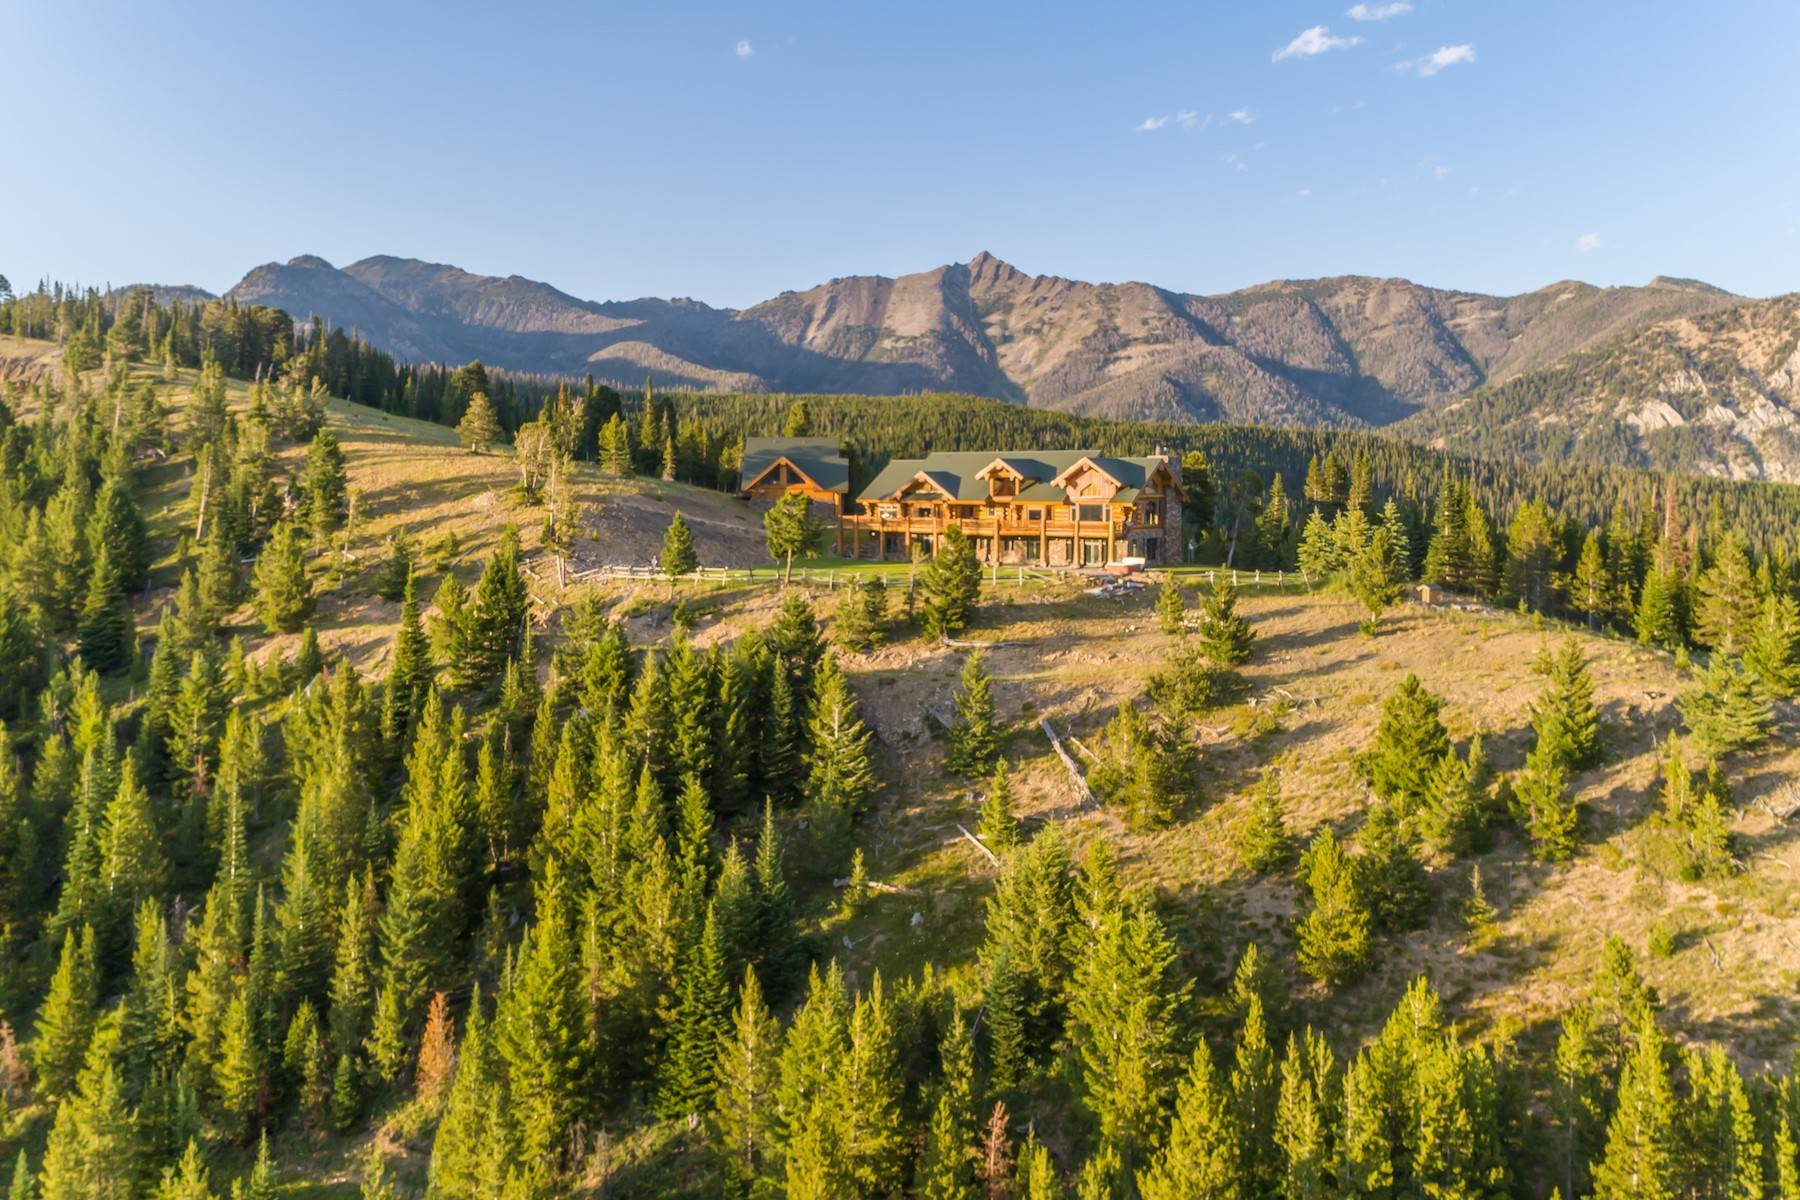 Property for Sale at Montana De Paz 1320 Old Toby Road Big Sky, Montana 59716 United States